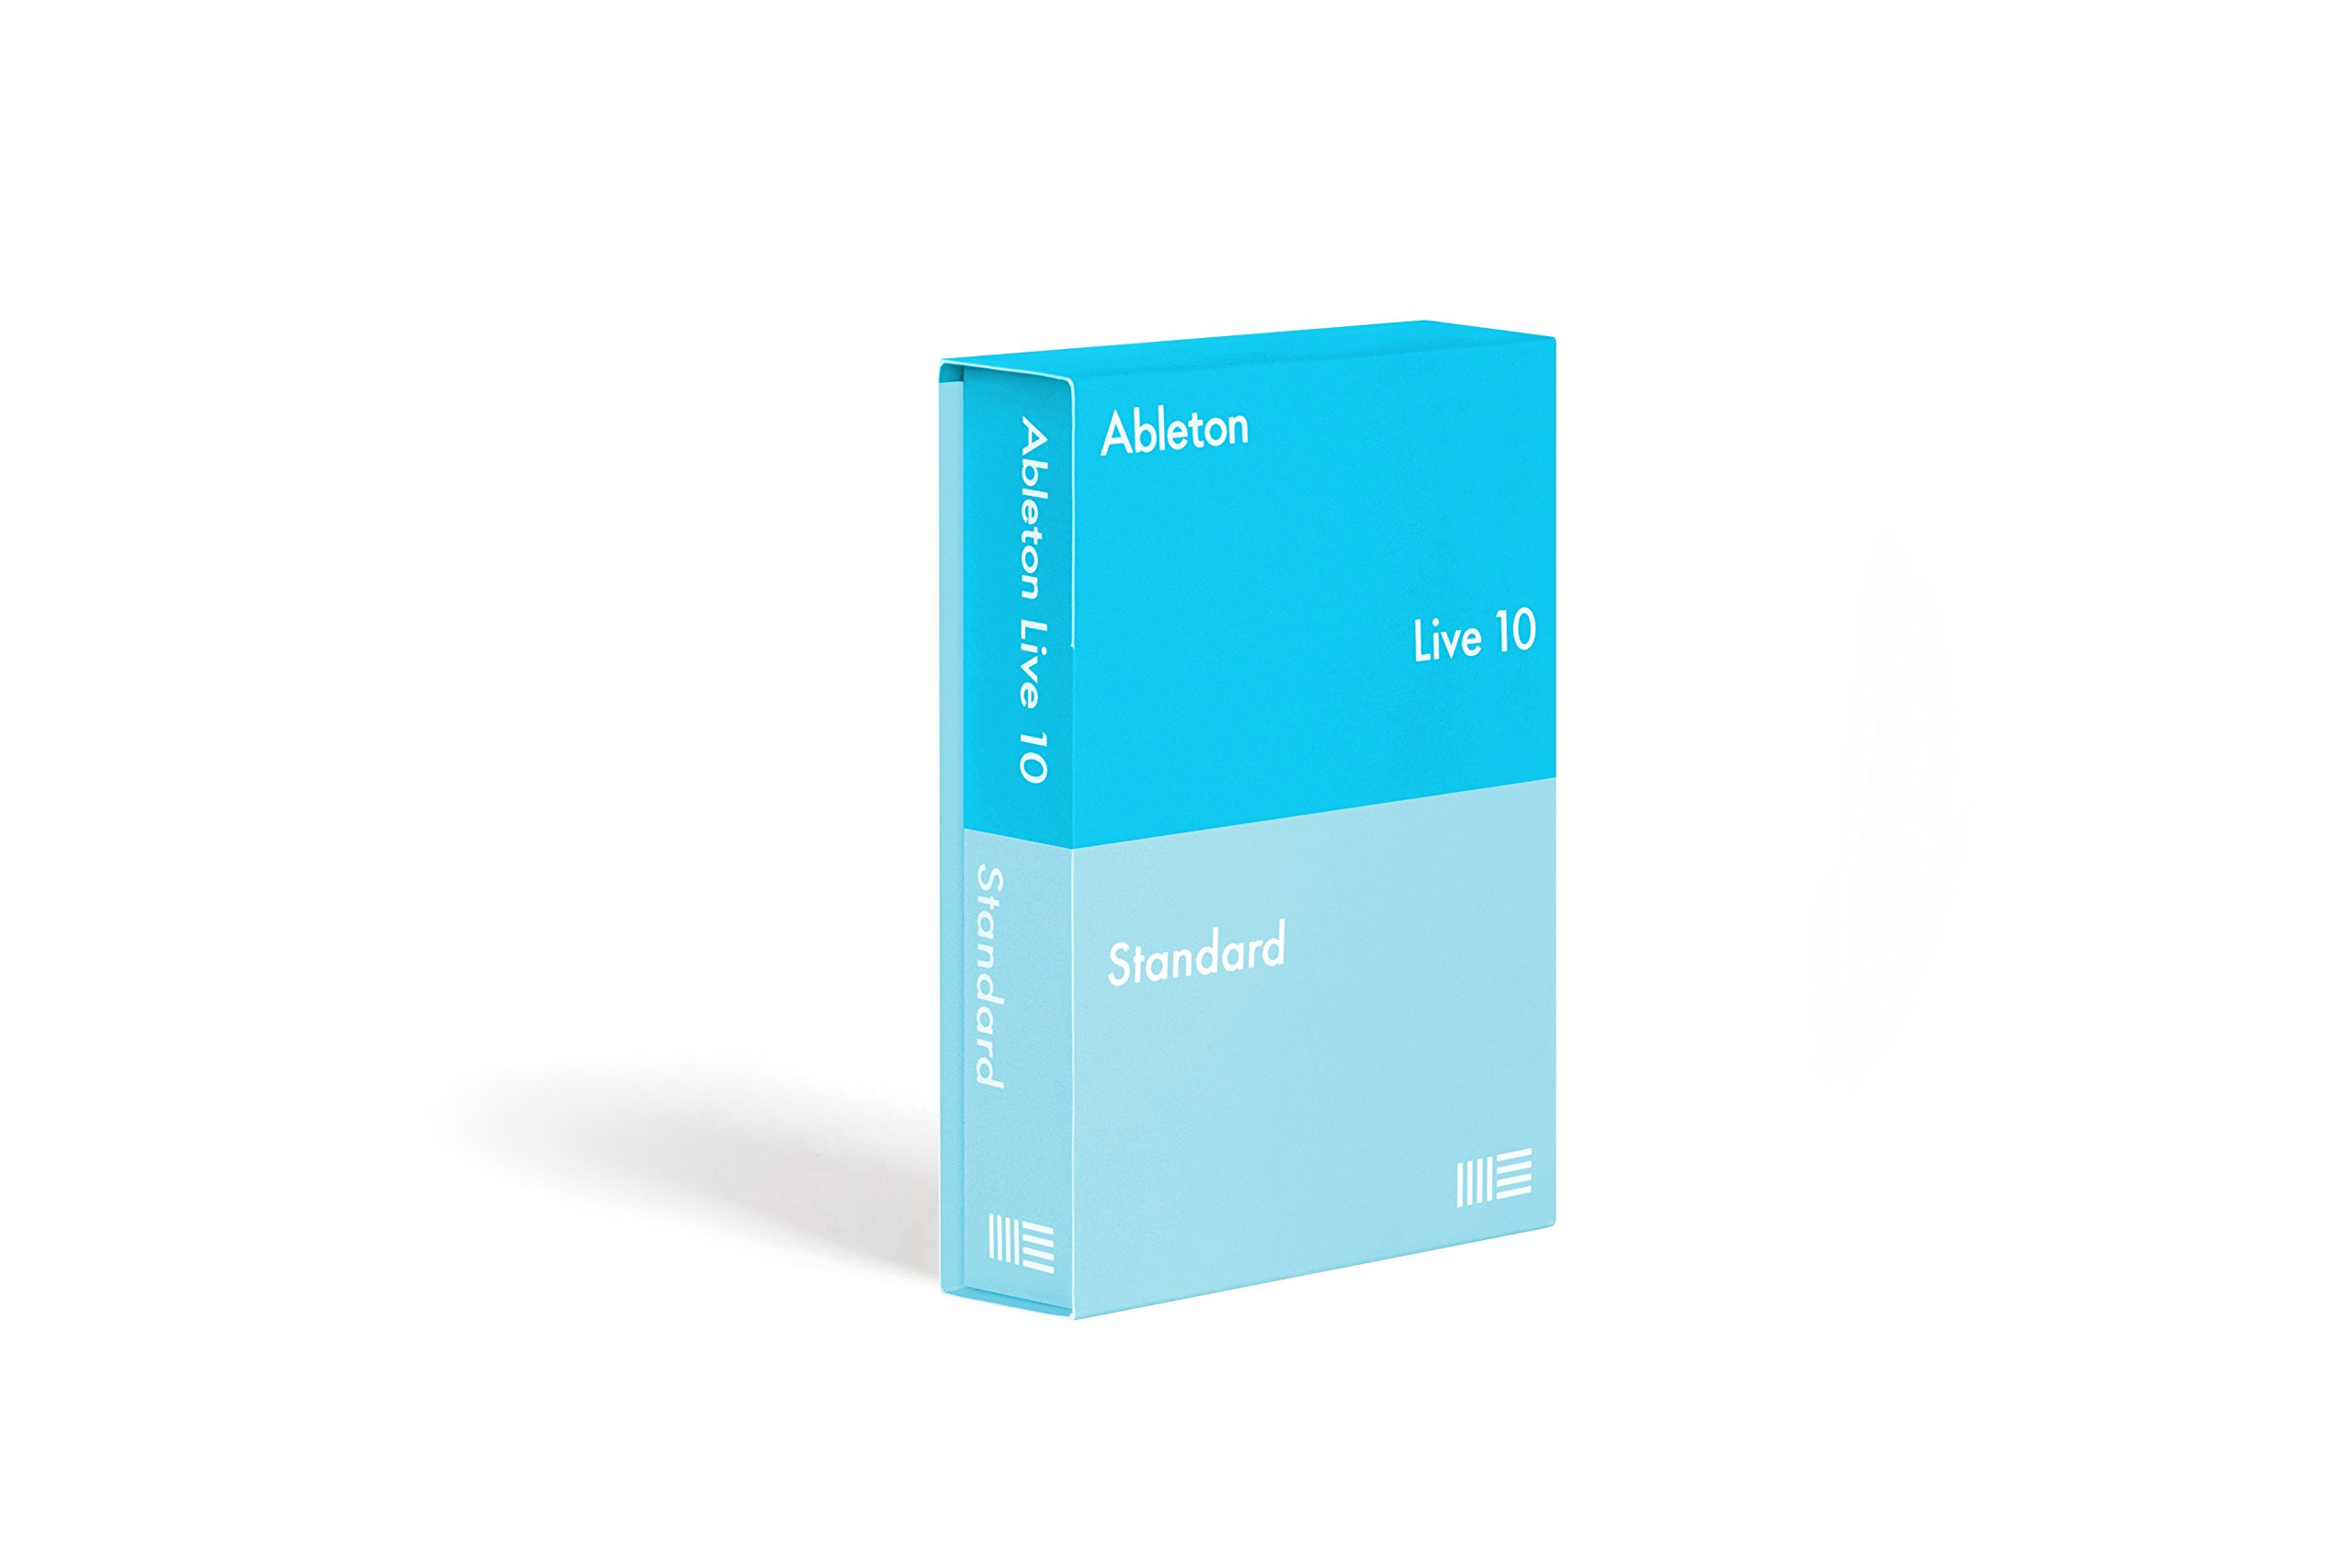 Ableton Multitrack Recording Software (Live 10 Standard) by Ableton